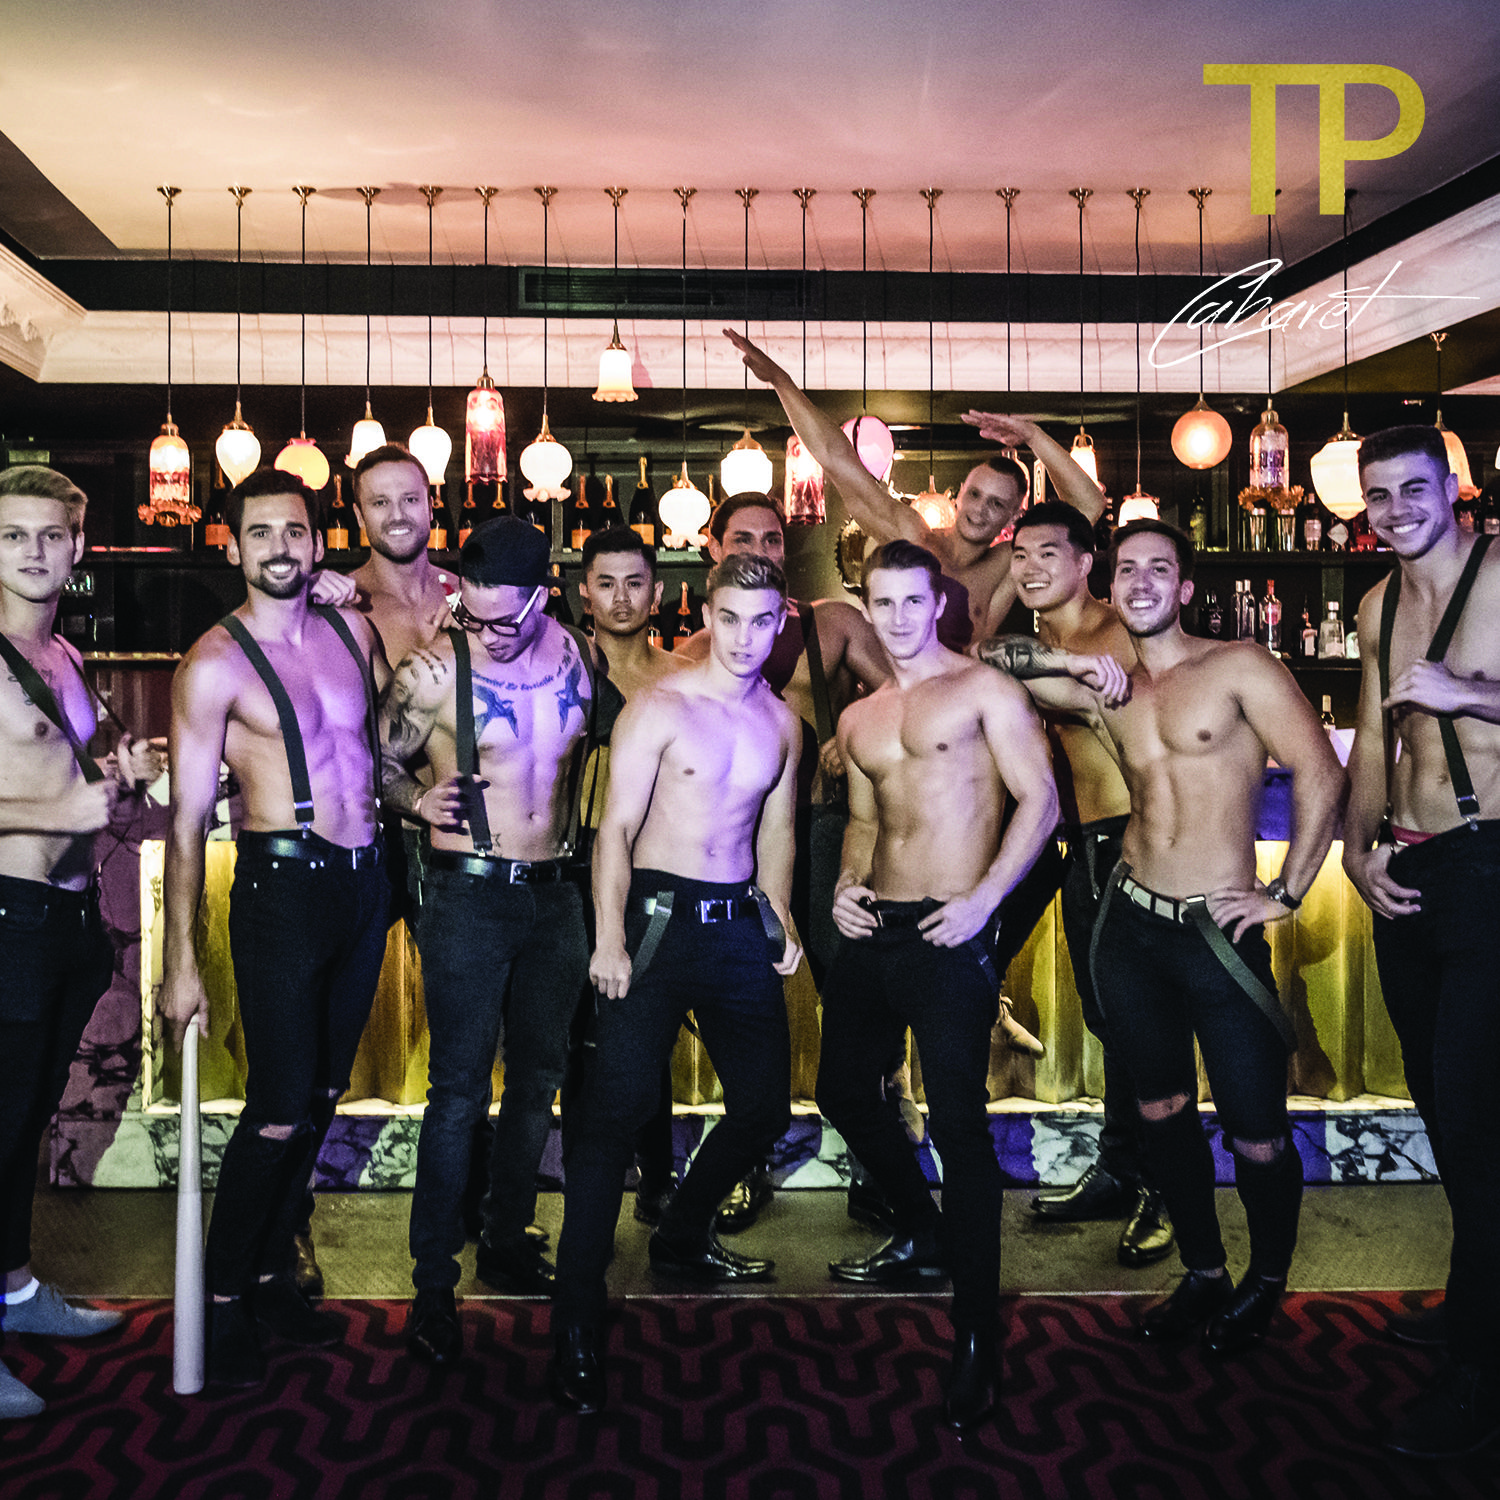 The party is here ladies, what are you waiting for 😉  .  .  .  .  .  #TwinPecks #TP #SydneyVenue #Muscles #HotMen #HensNight #SydneyShow #Show #Sizzling #AbsForDays #Abs #BaesOfInstagram #Sexy #KillerAbs #HensParty #SydneyEntertainment #BacheloretteParty #NaughtyChristmas #LadiesNight #BridalShower #SydneyWedding #Bridesmaids #ToplessWaiters #MaleModel #BrideToBe #MaleStrippers #girlsnightout #CabaretShow #AllMaleRevue